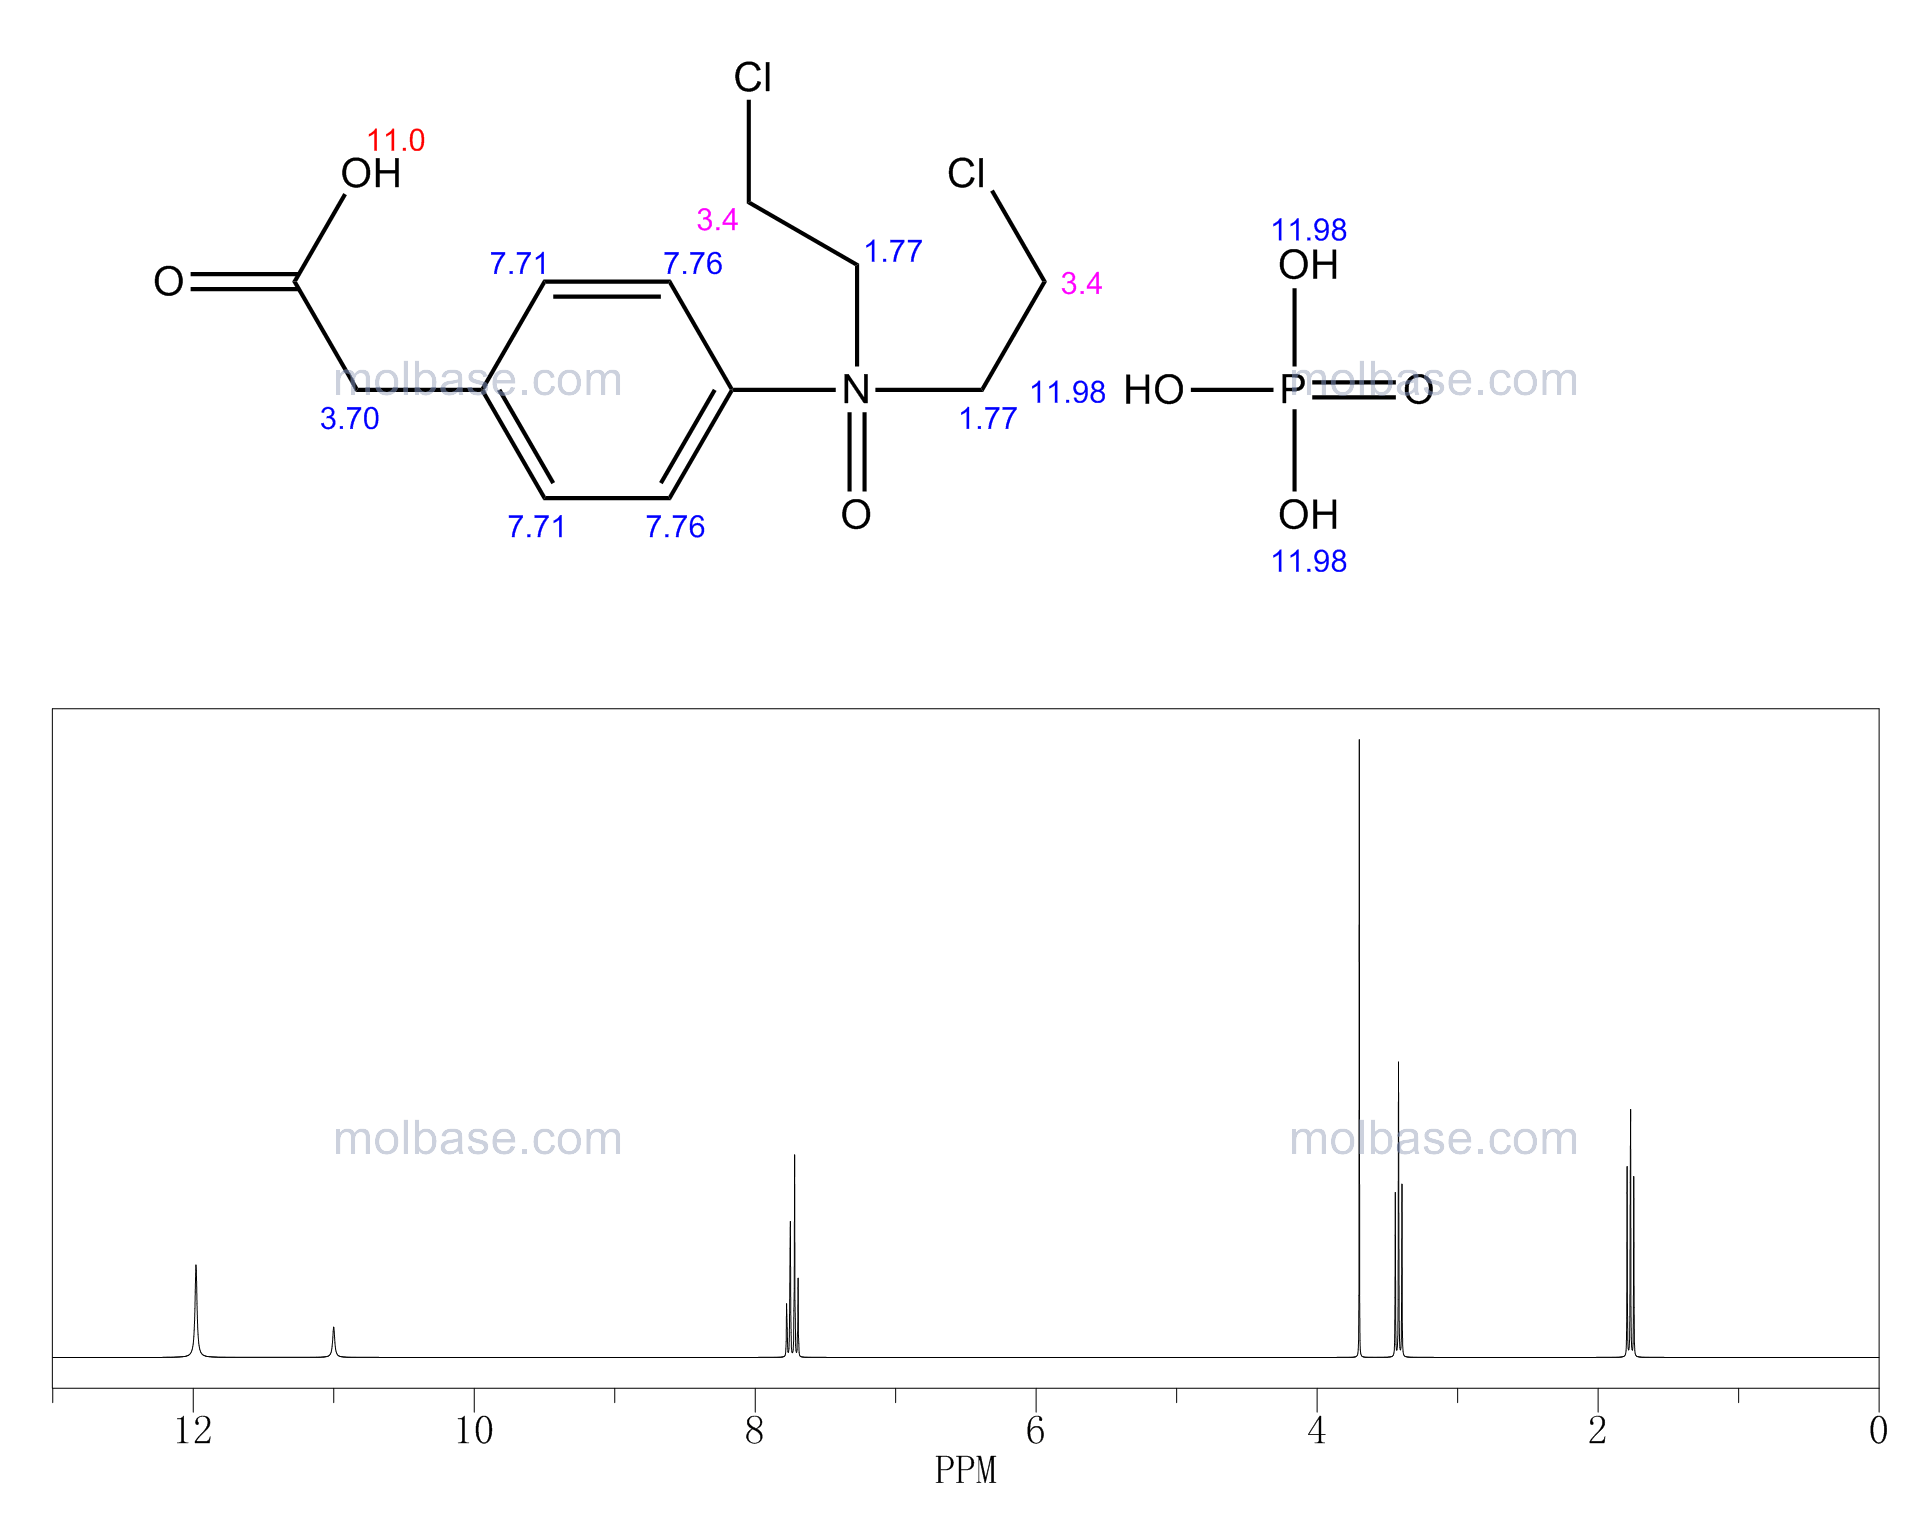 4-(carboxymethyl)-N,N-bis(2-chloroethyl)benzeneamine oxide,phosphoric acid NMR spectra analysis, Chemical CAS NO. 159126-29-1 NMR spectral analysis, 4-(carboxymethyl)-N,N-bis(2-chloroethyl)benzeneamine oxide,phosphoric acid C-NMR spectrum